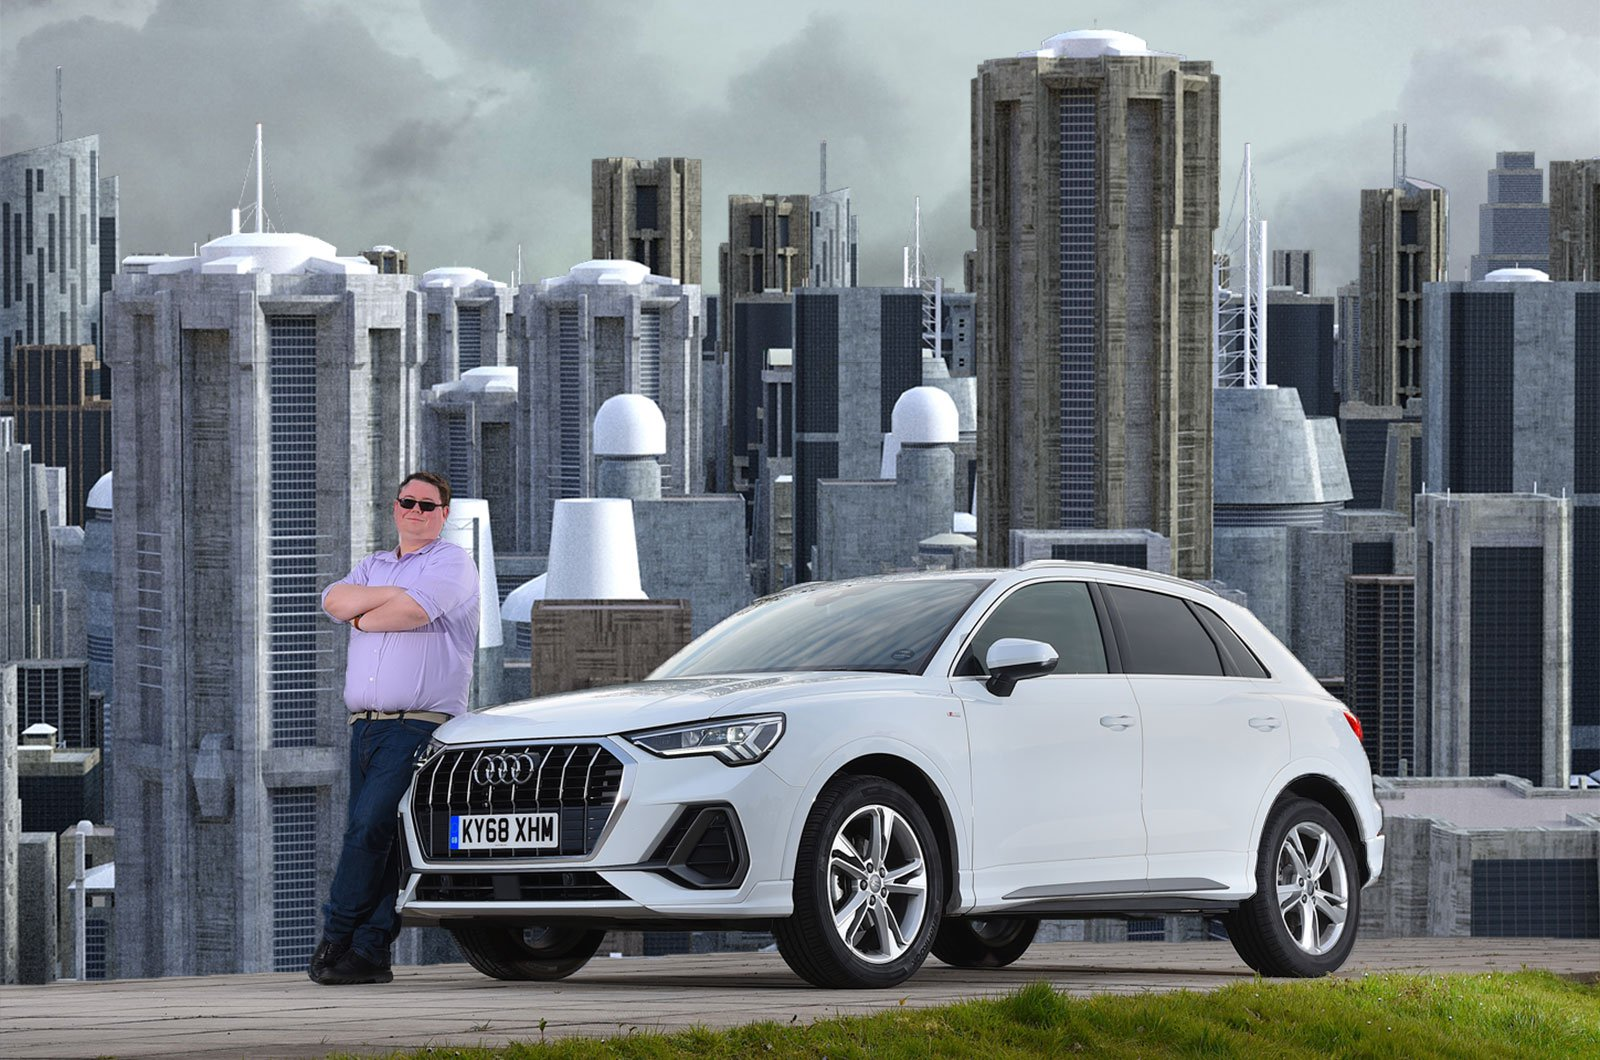 Audi Q3 on dystopian city background